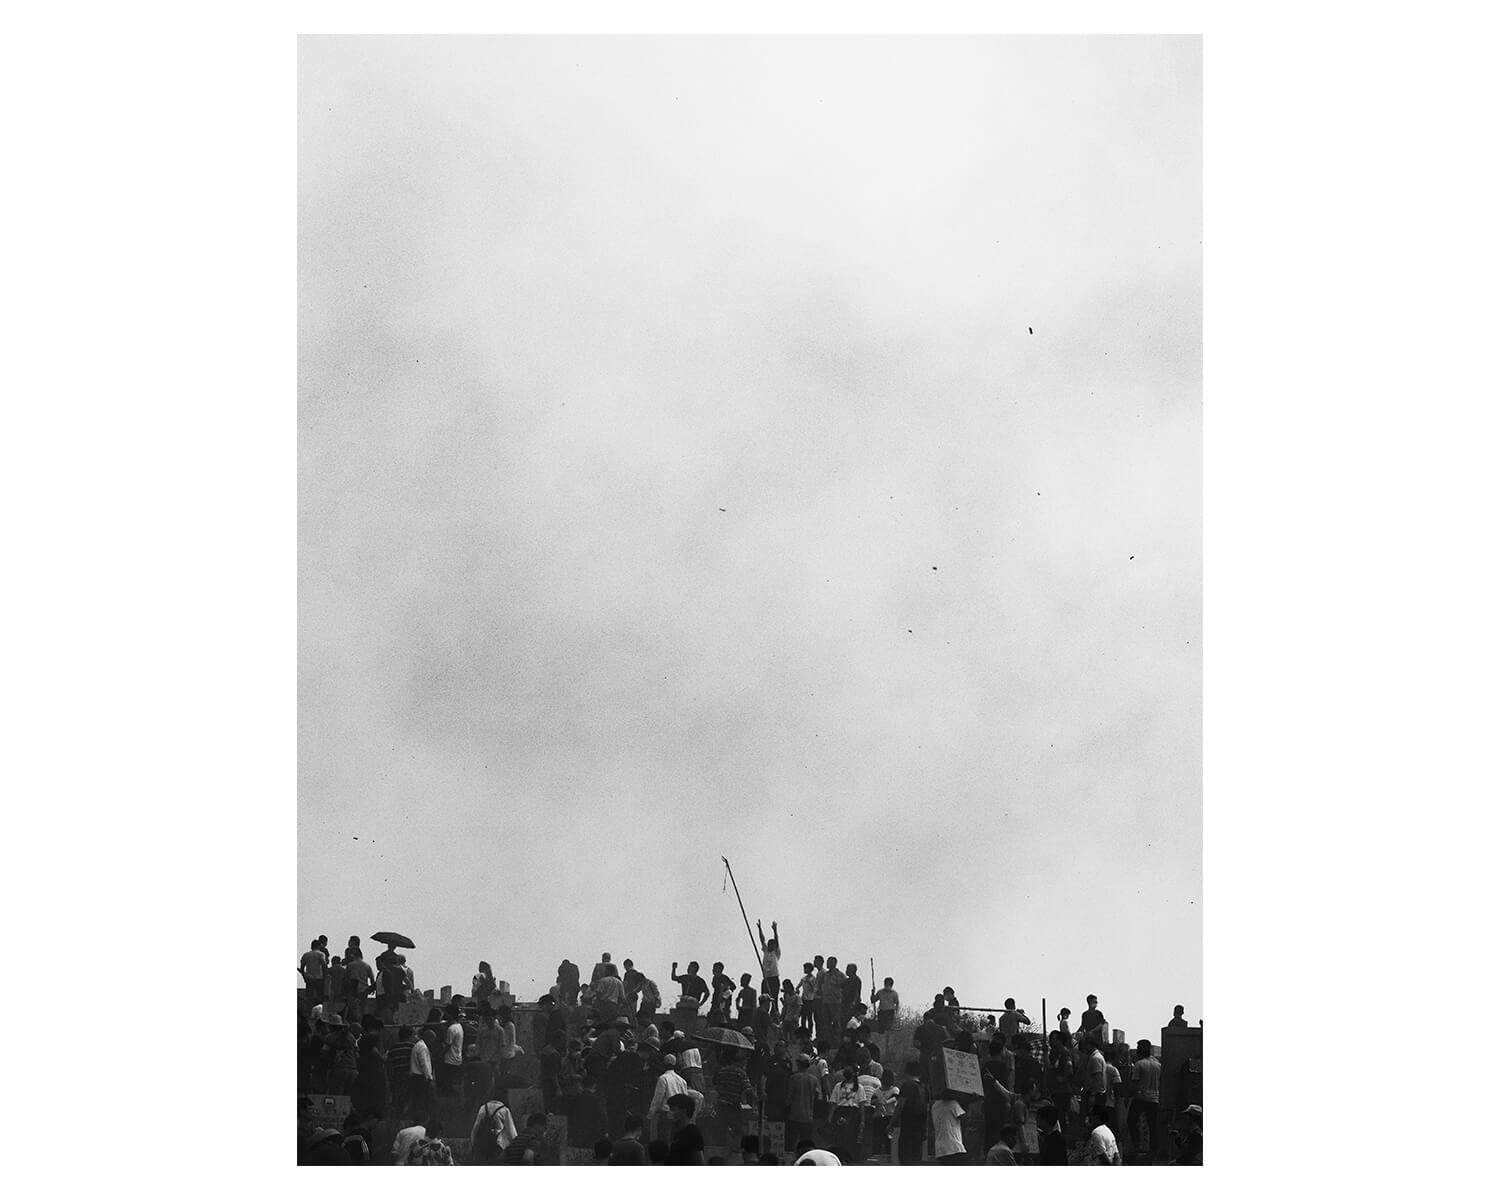 Tony Mak - To The West Of The Solitary Sea. Crowds of people and grey sky